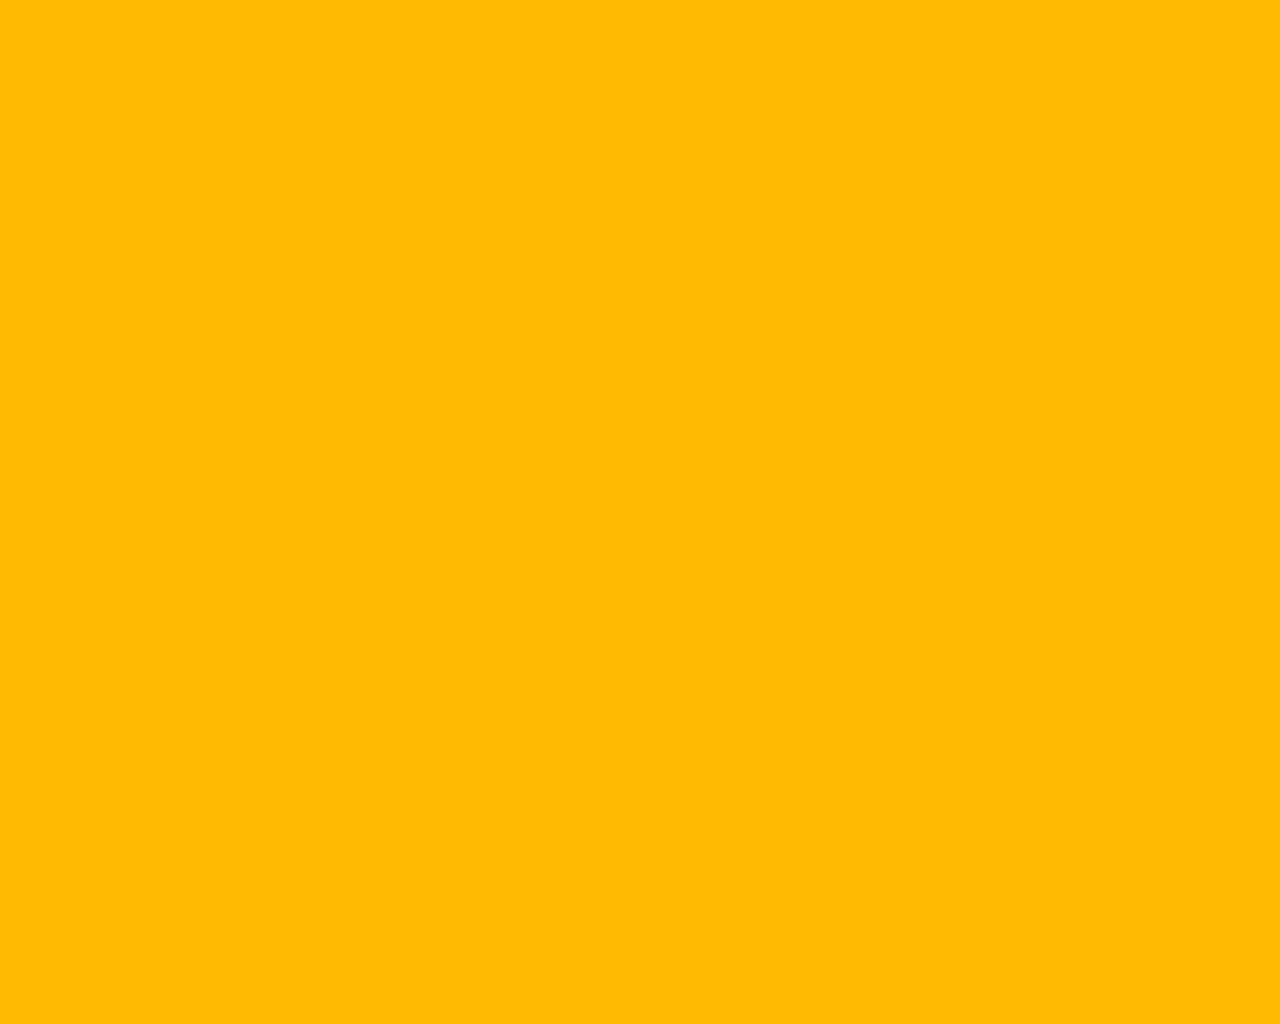 1280x1024 Selective Yellow Solid Color Background